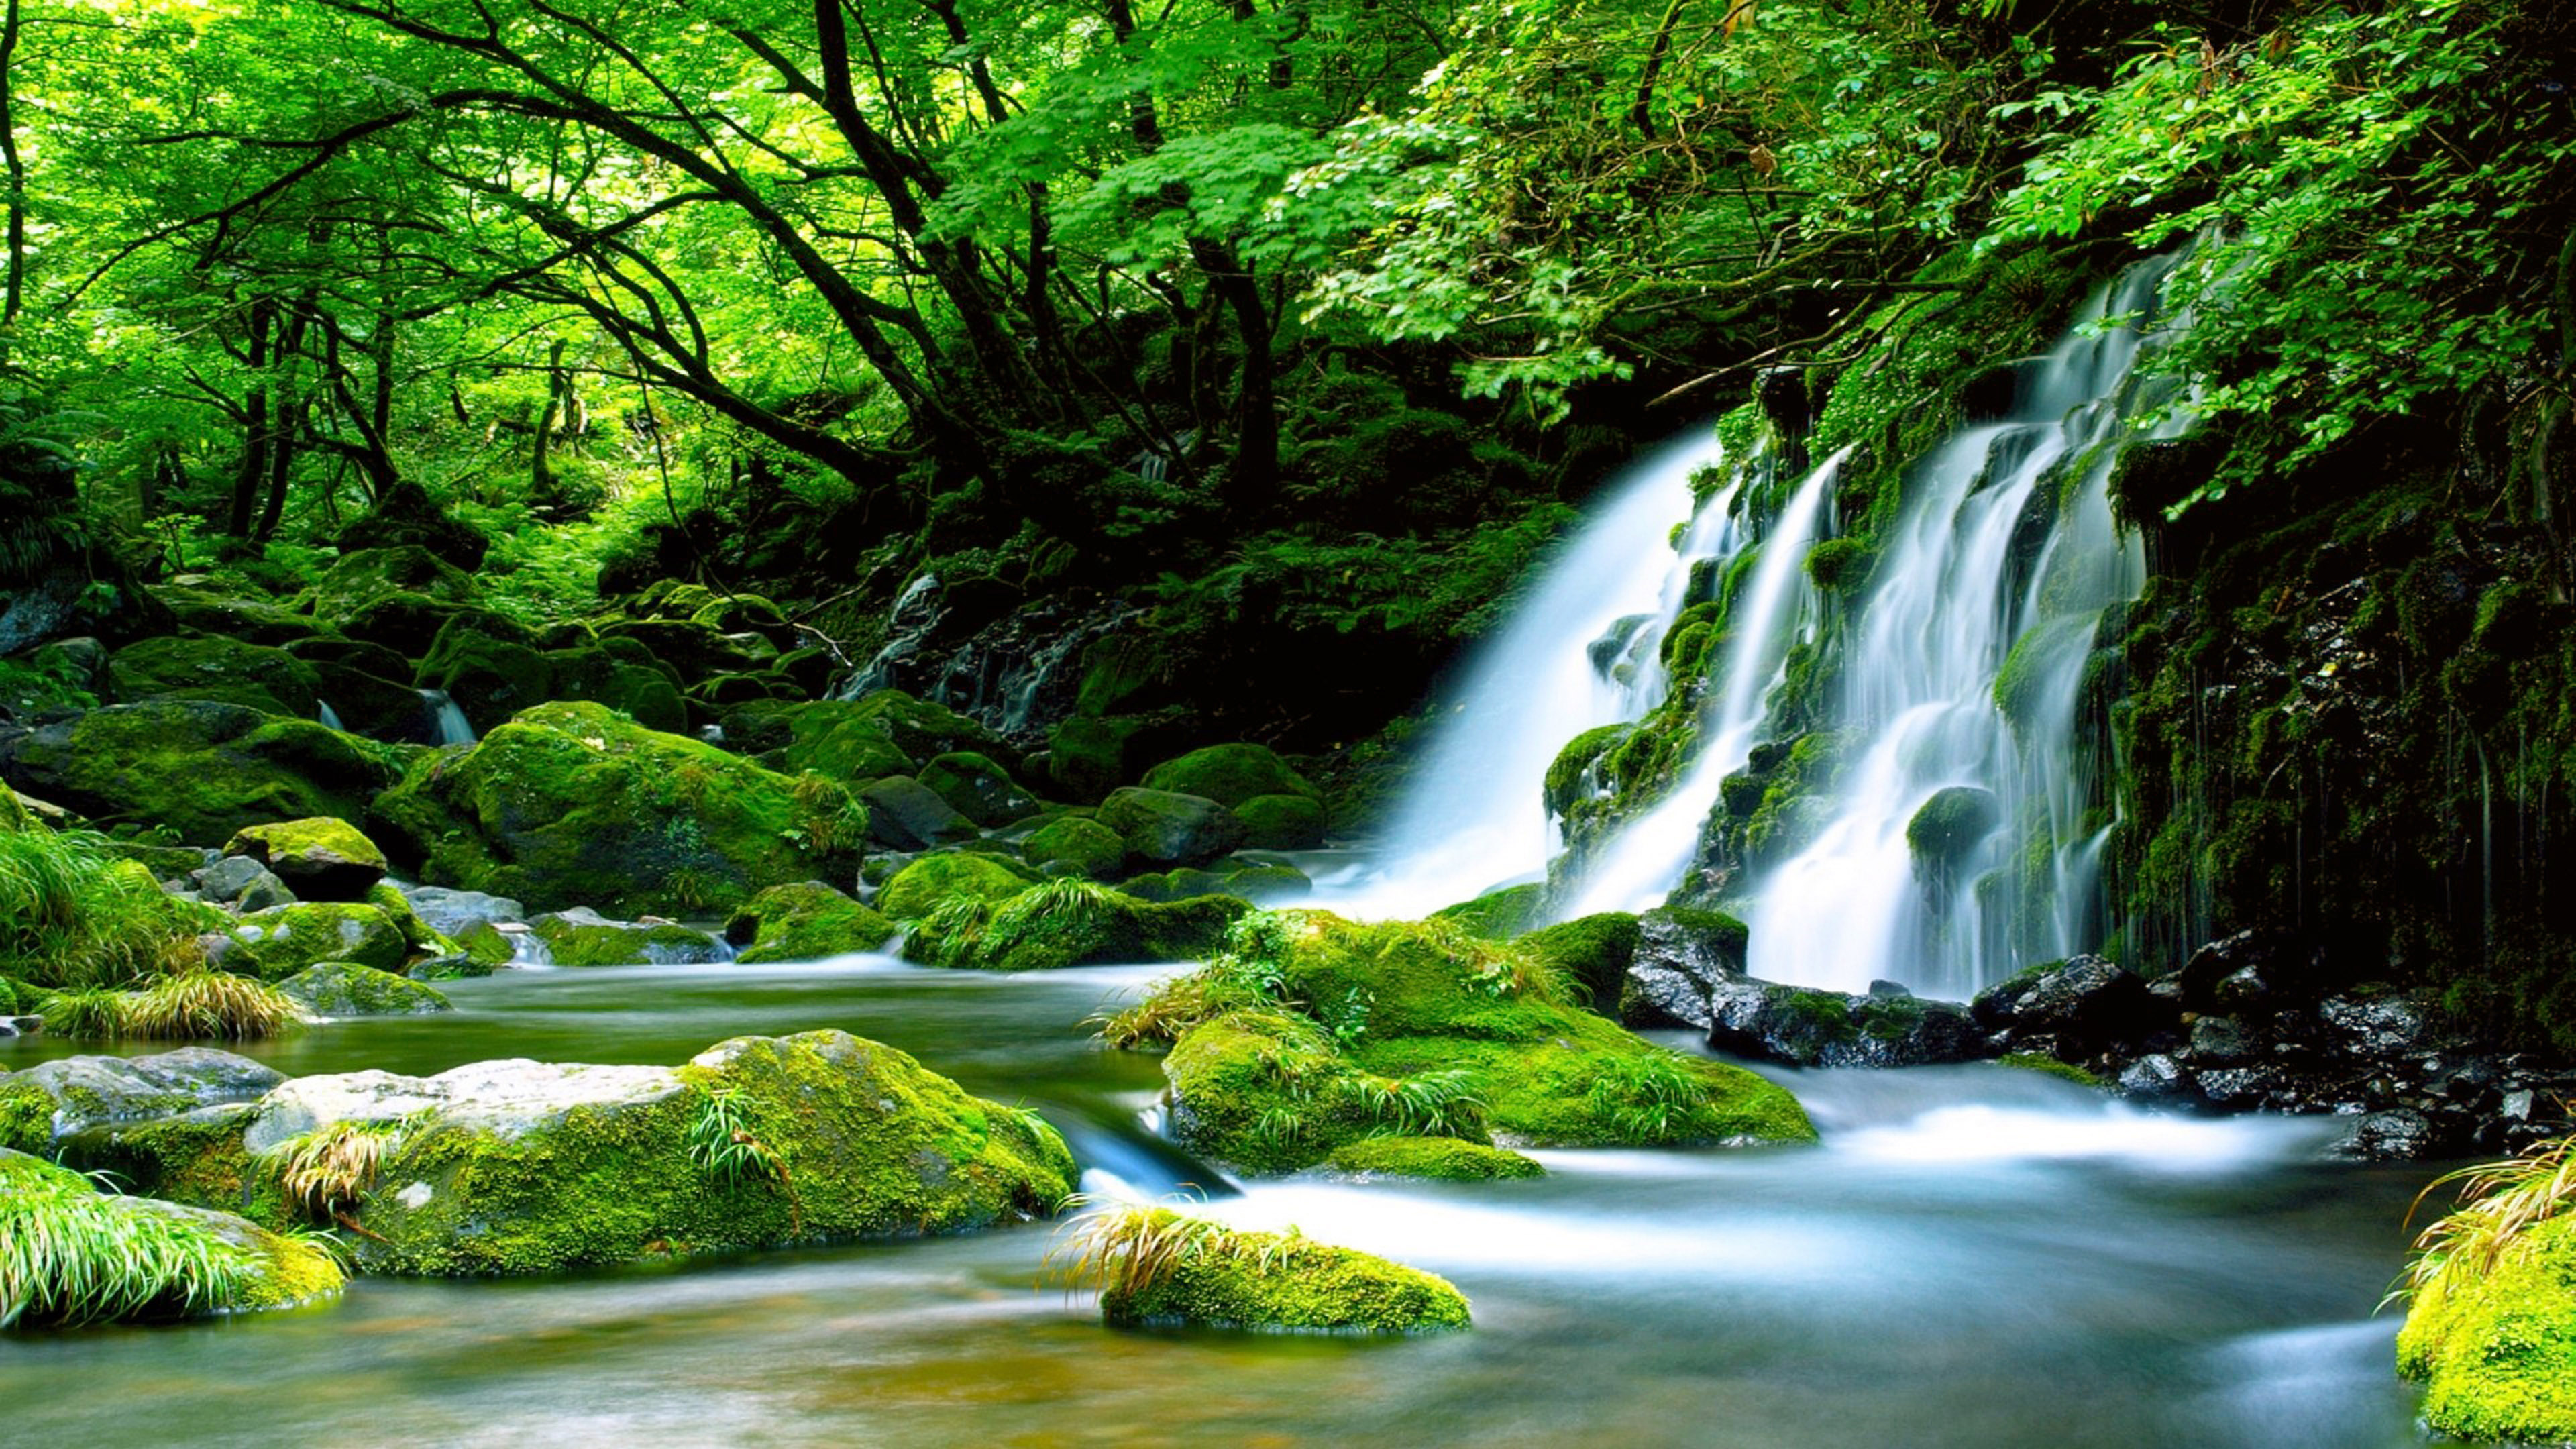 Falls Hd Wallpaper Free Download Green Waterfall River Rocks Covered With Green Moss Forest